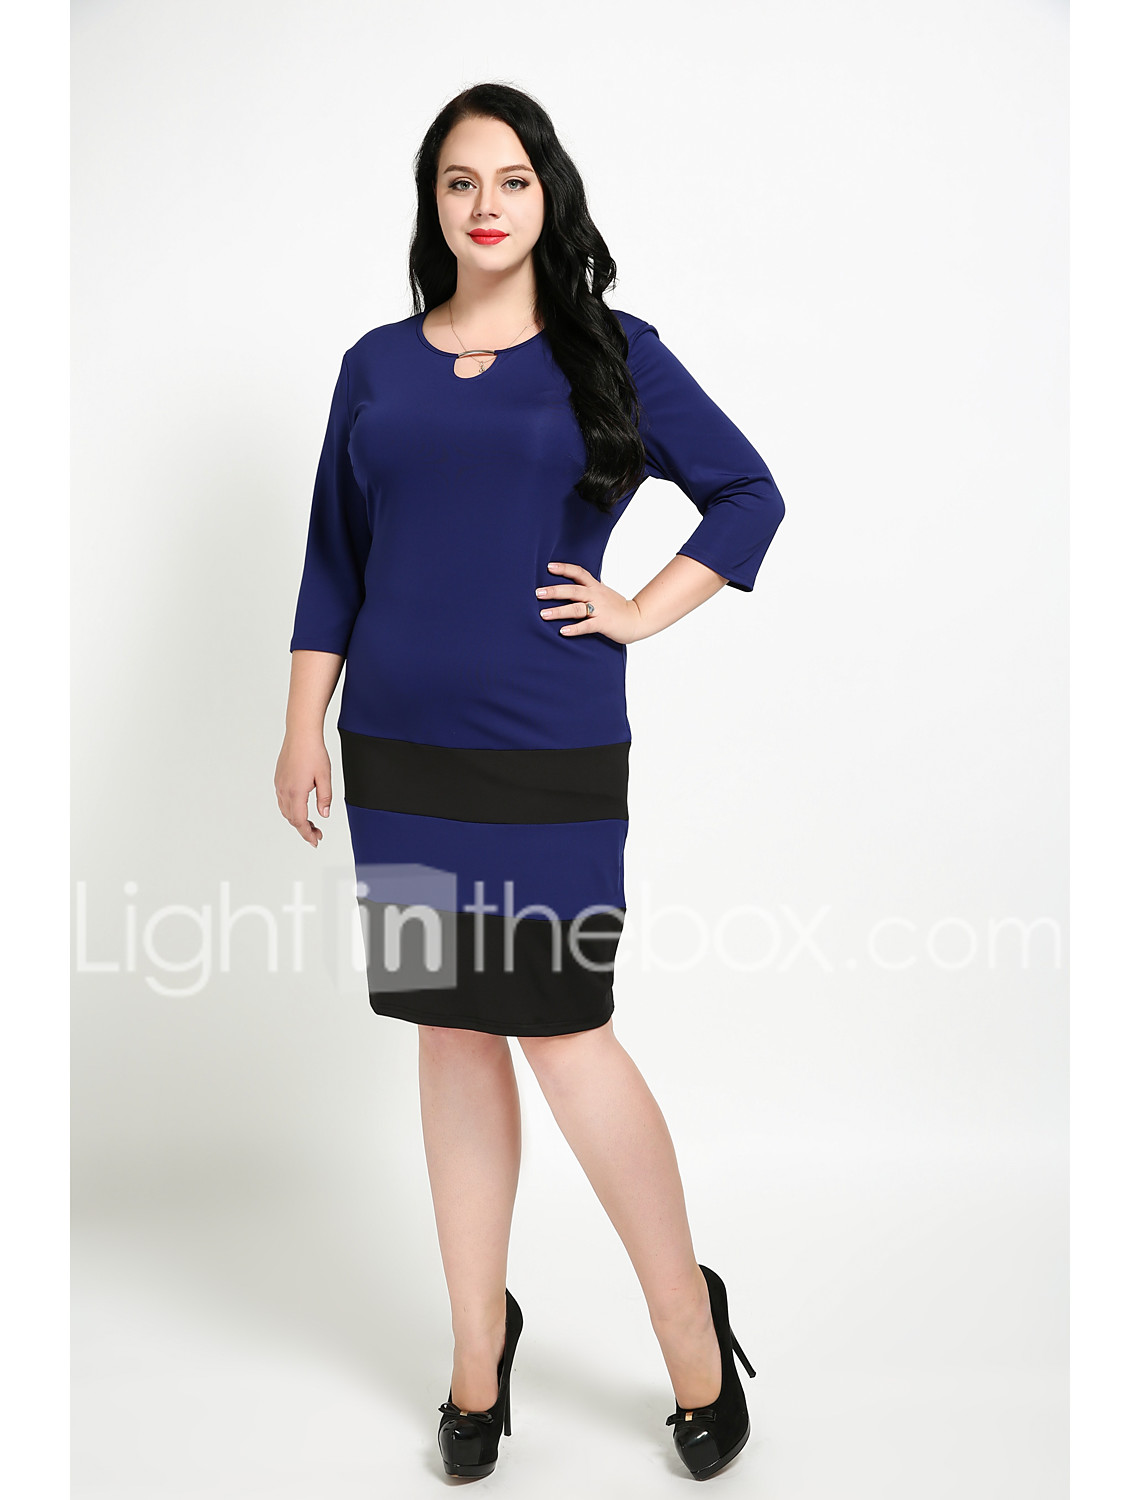 2f662a478a9 Women's Plus Size Daily Vintage Tunic Dress - Color Block Sequins Fall  Cotton Black Royal Blue